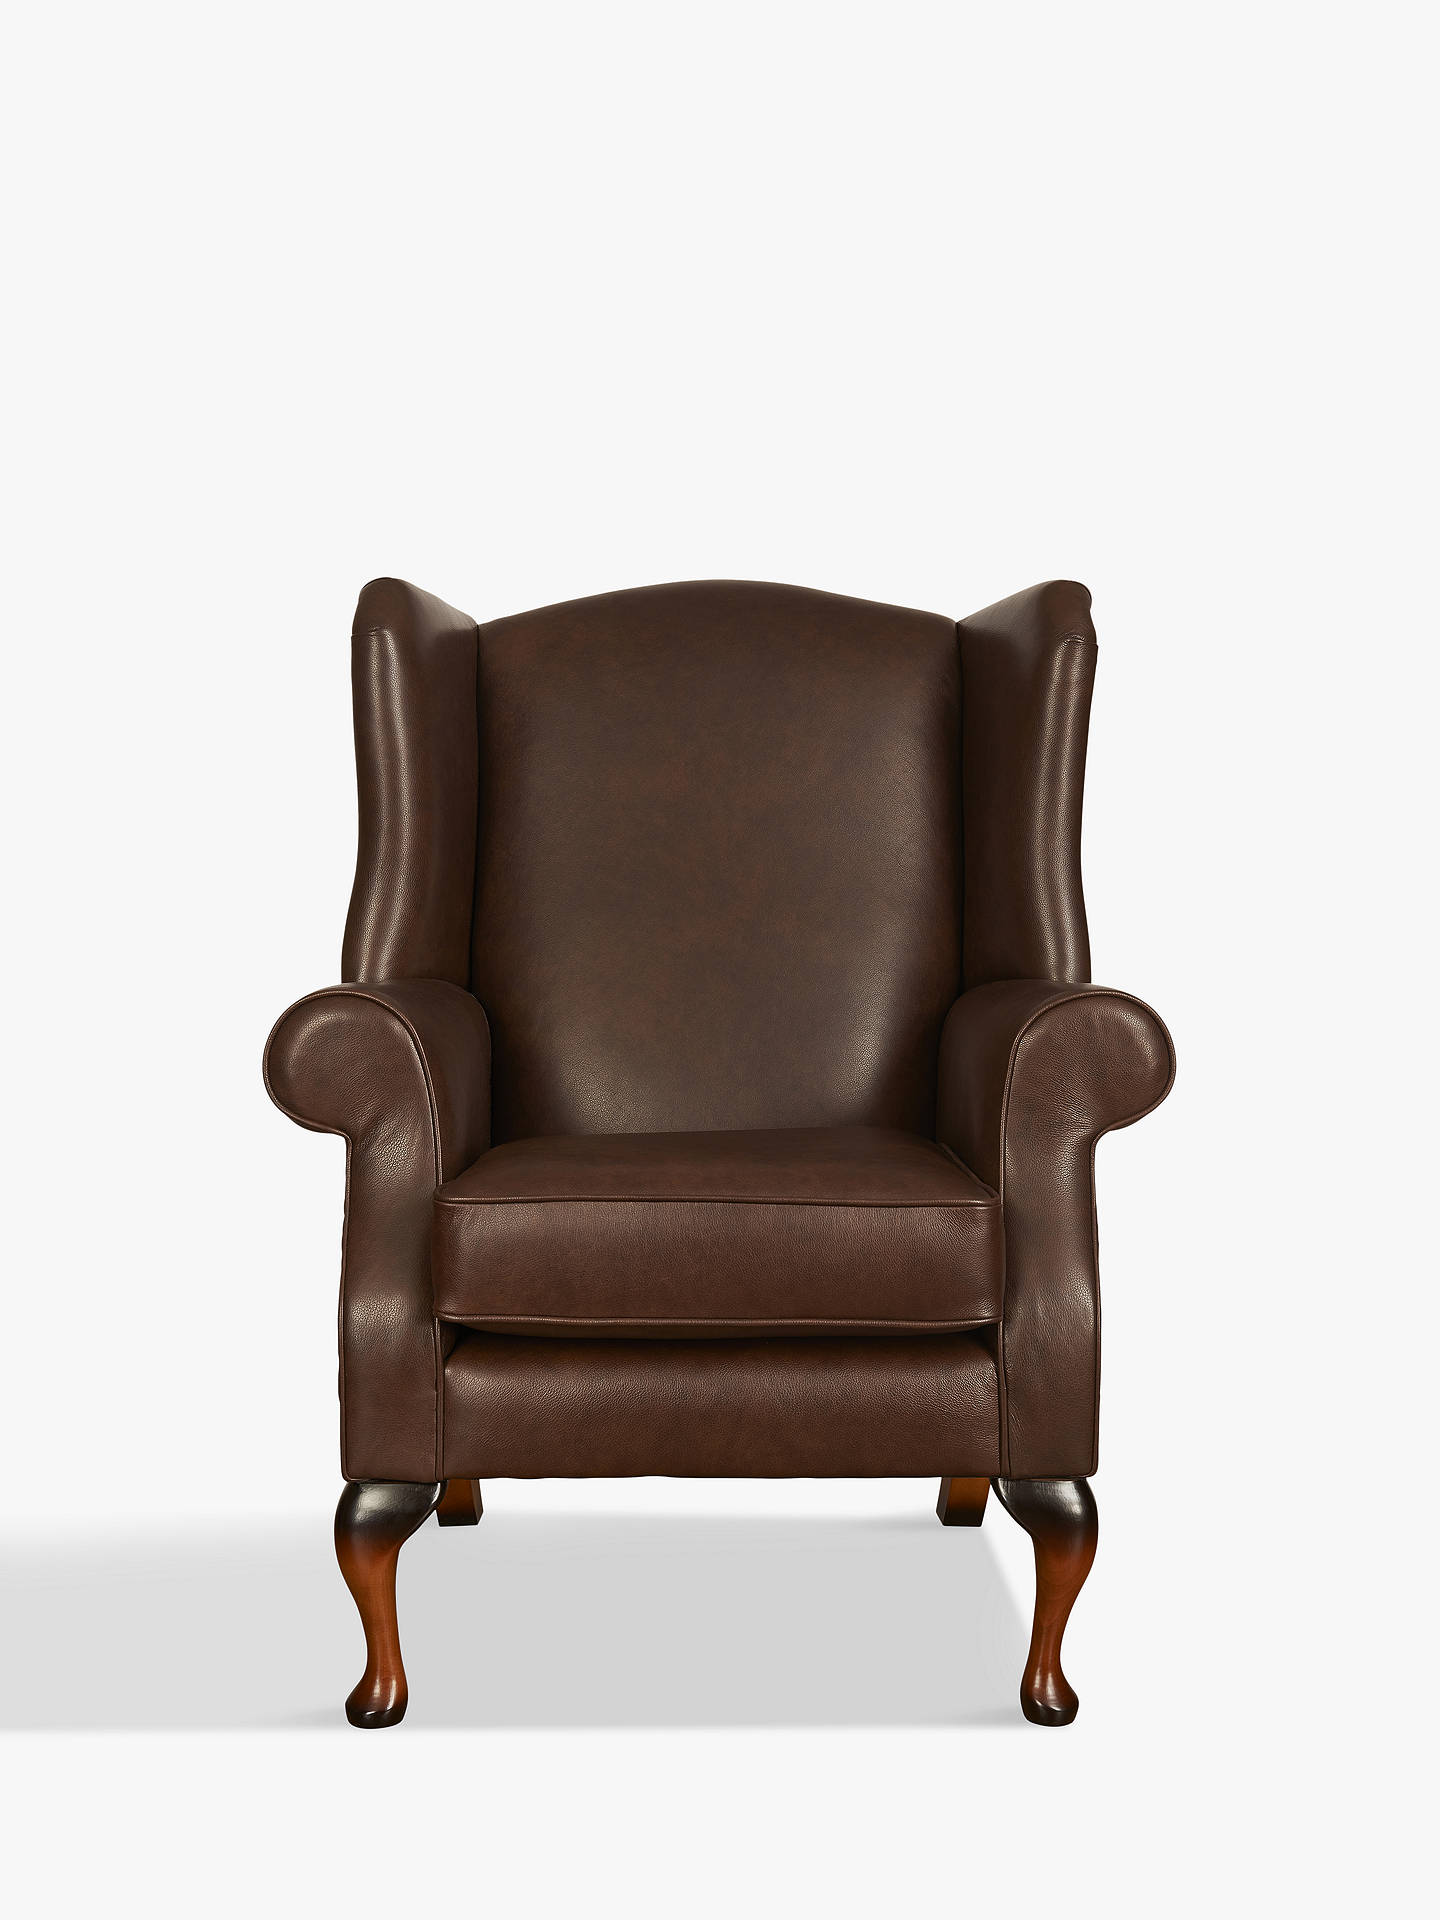 BuyParker Knoll Oberon Leather Chair, Dallas Leather Online at johnlewis.com